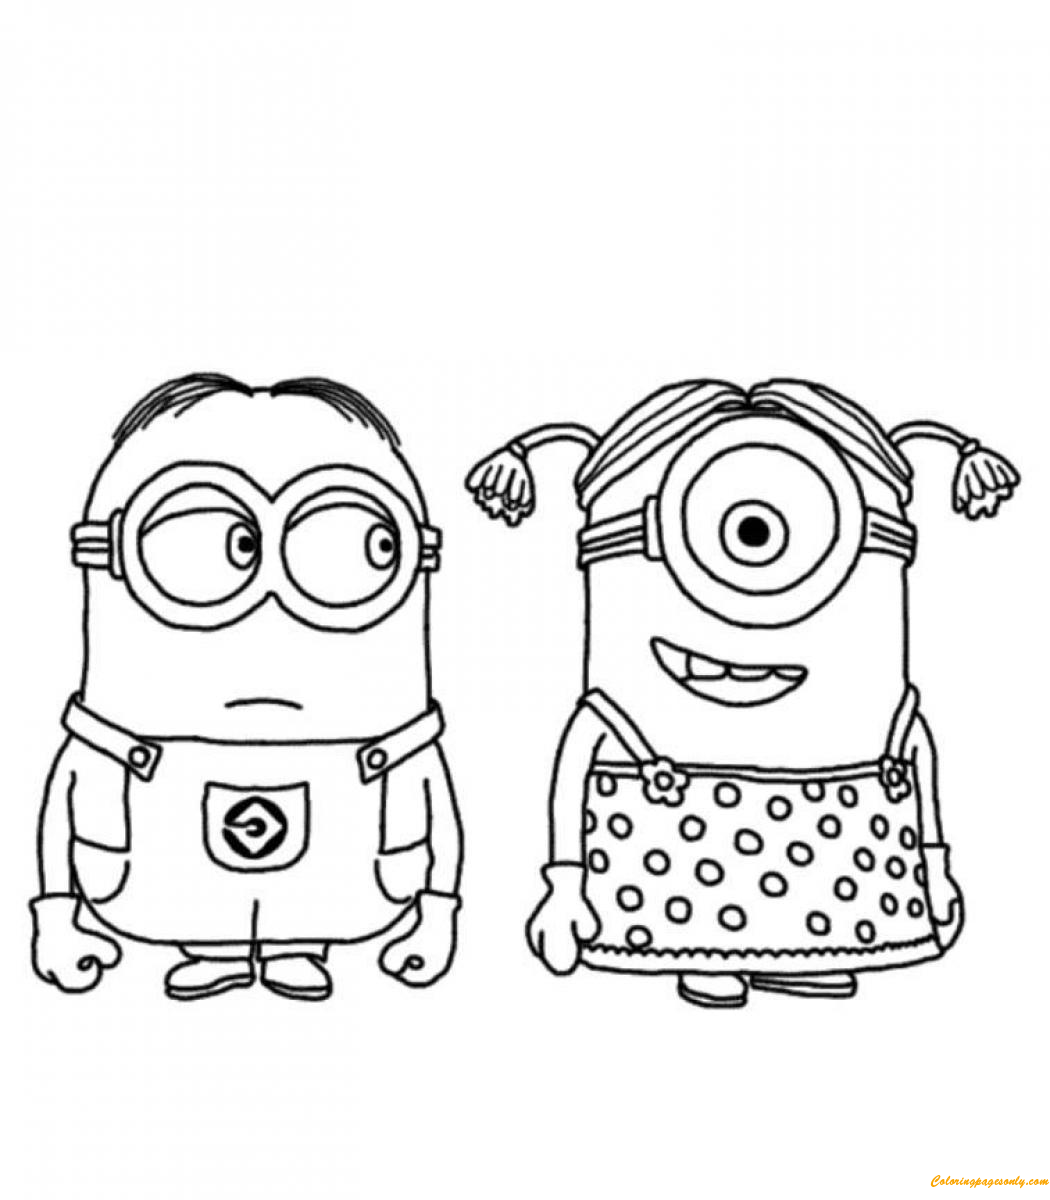 Two Minion In Despicable Me Coloring Page - Free Coloring ...